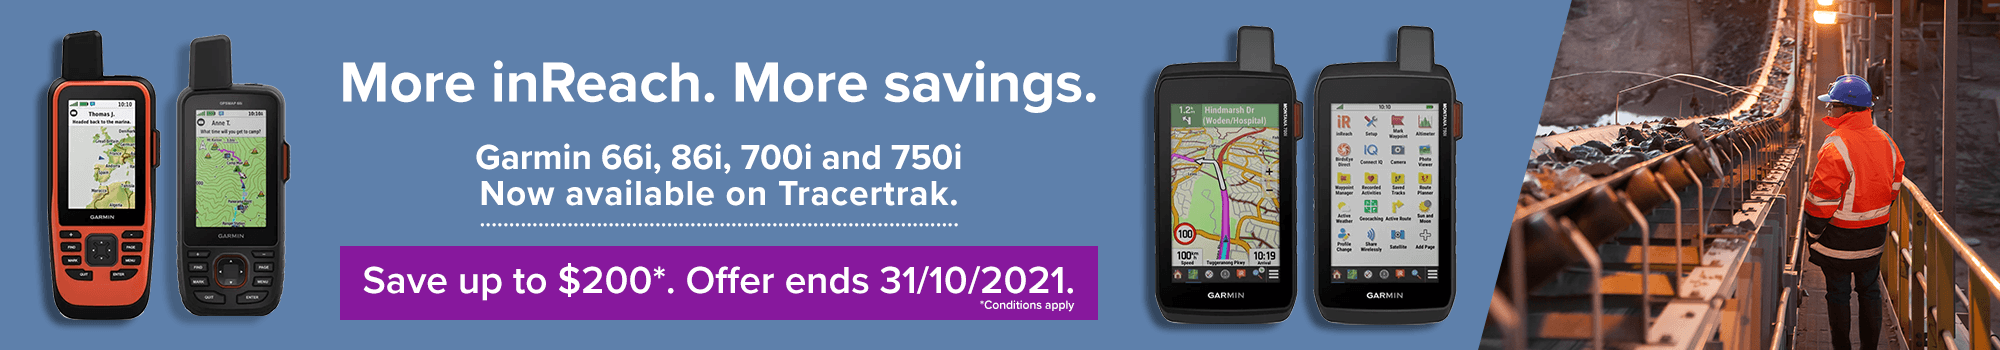 save up to $200 on garmin 66i, 86i, 700i and 750i devices when purchased with a tracertrak plan promo extend